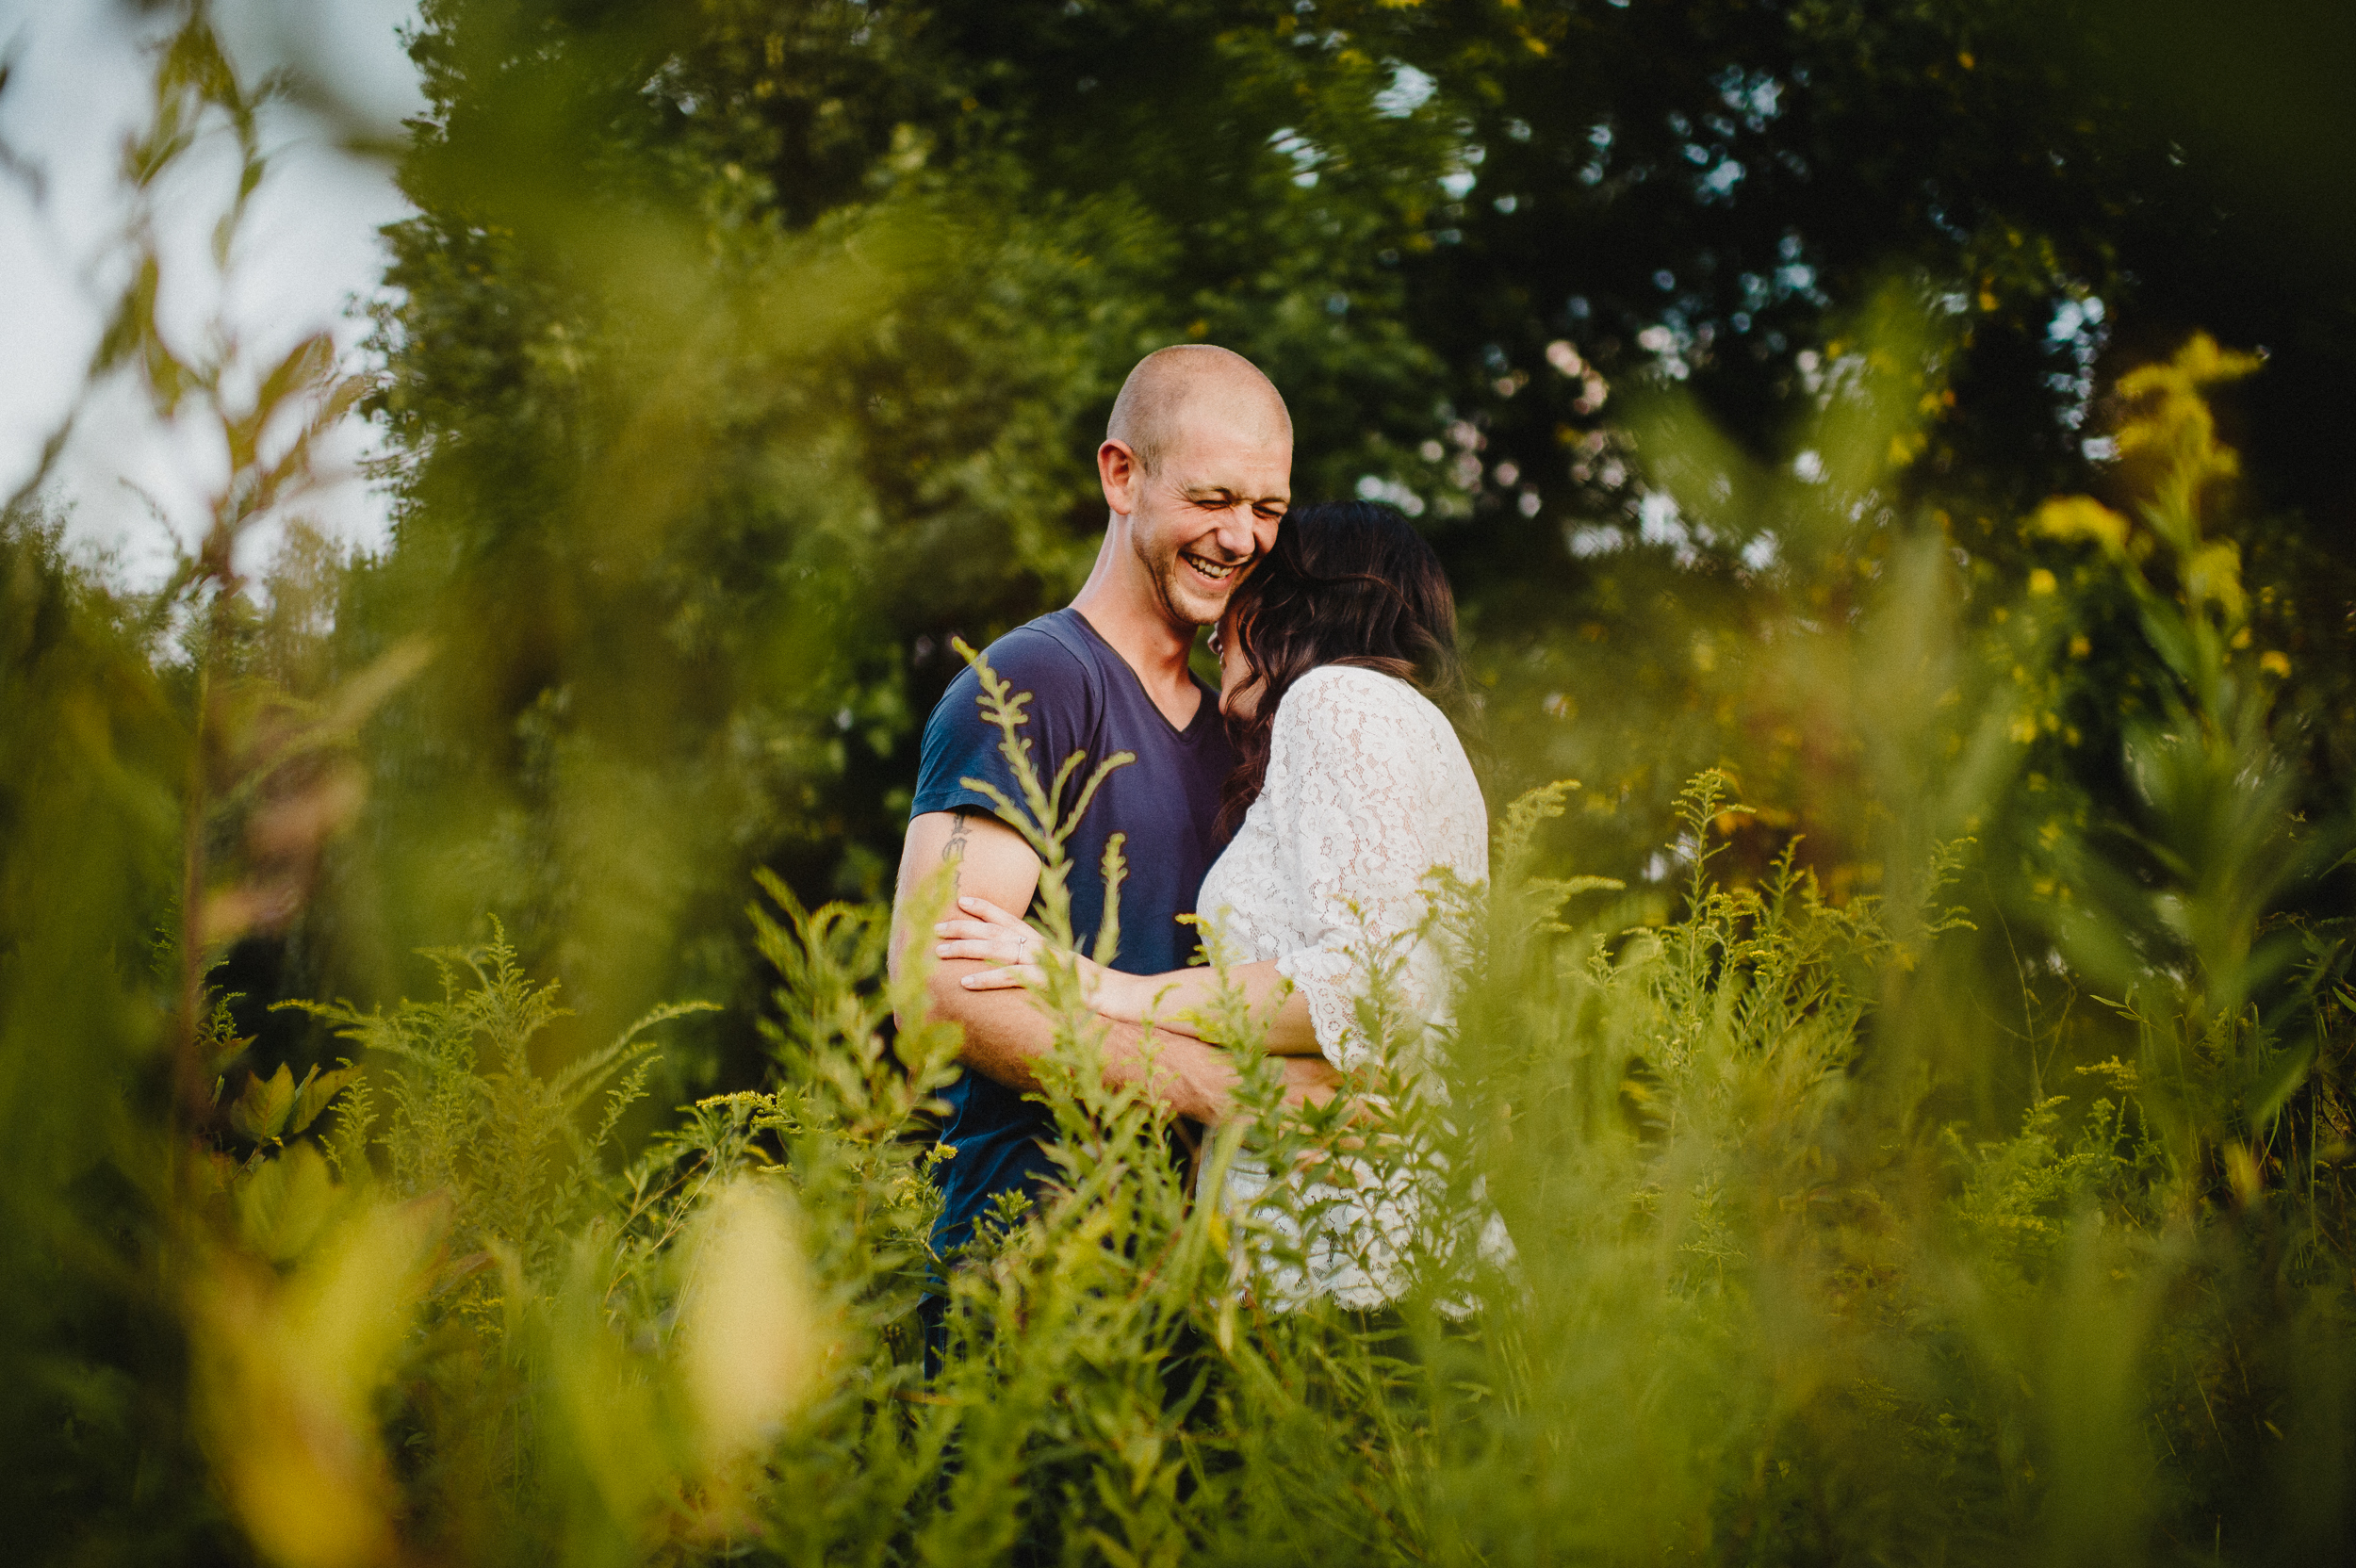 pat-robinson-photography-pa-engagement-session-16.jpg